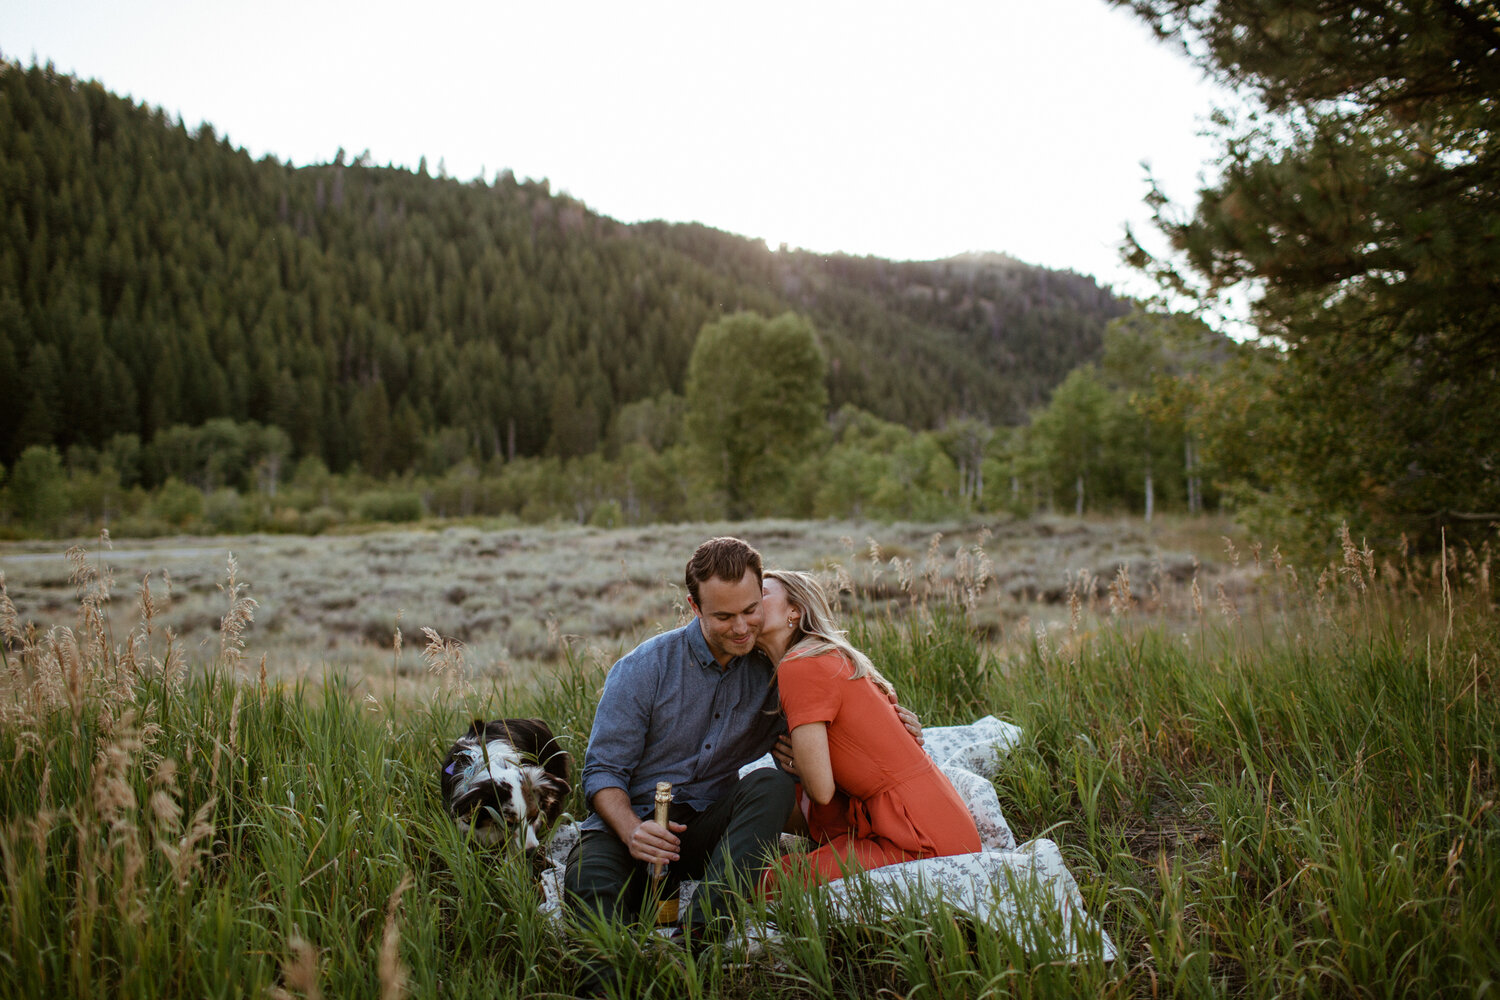 sun-valley-engagement-photos-christinemarie-15.jpg